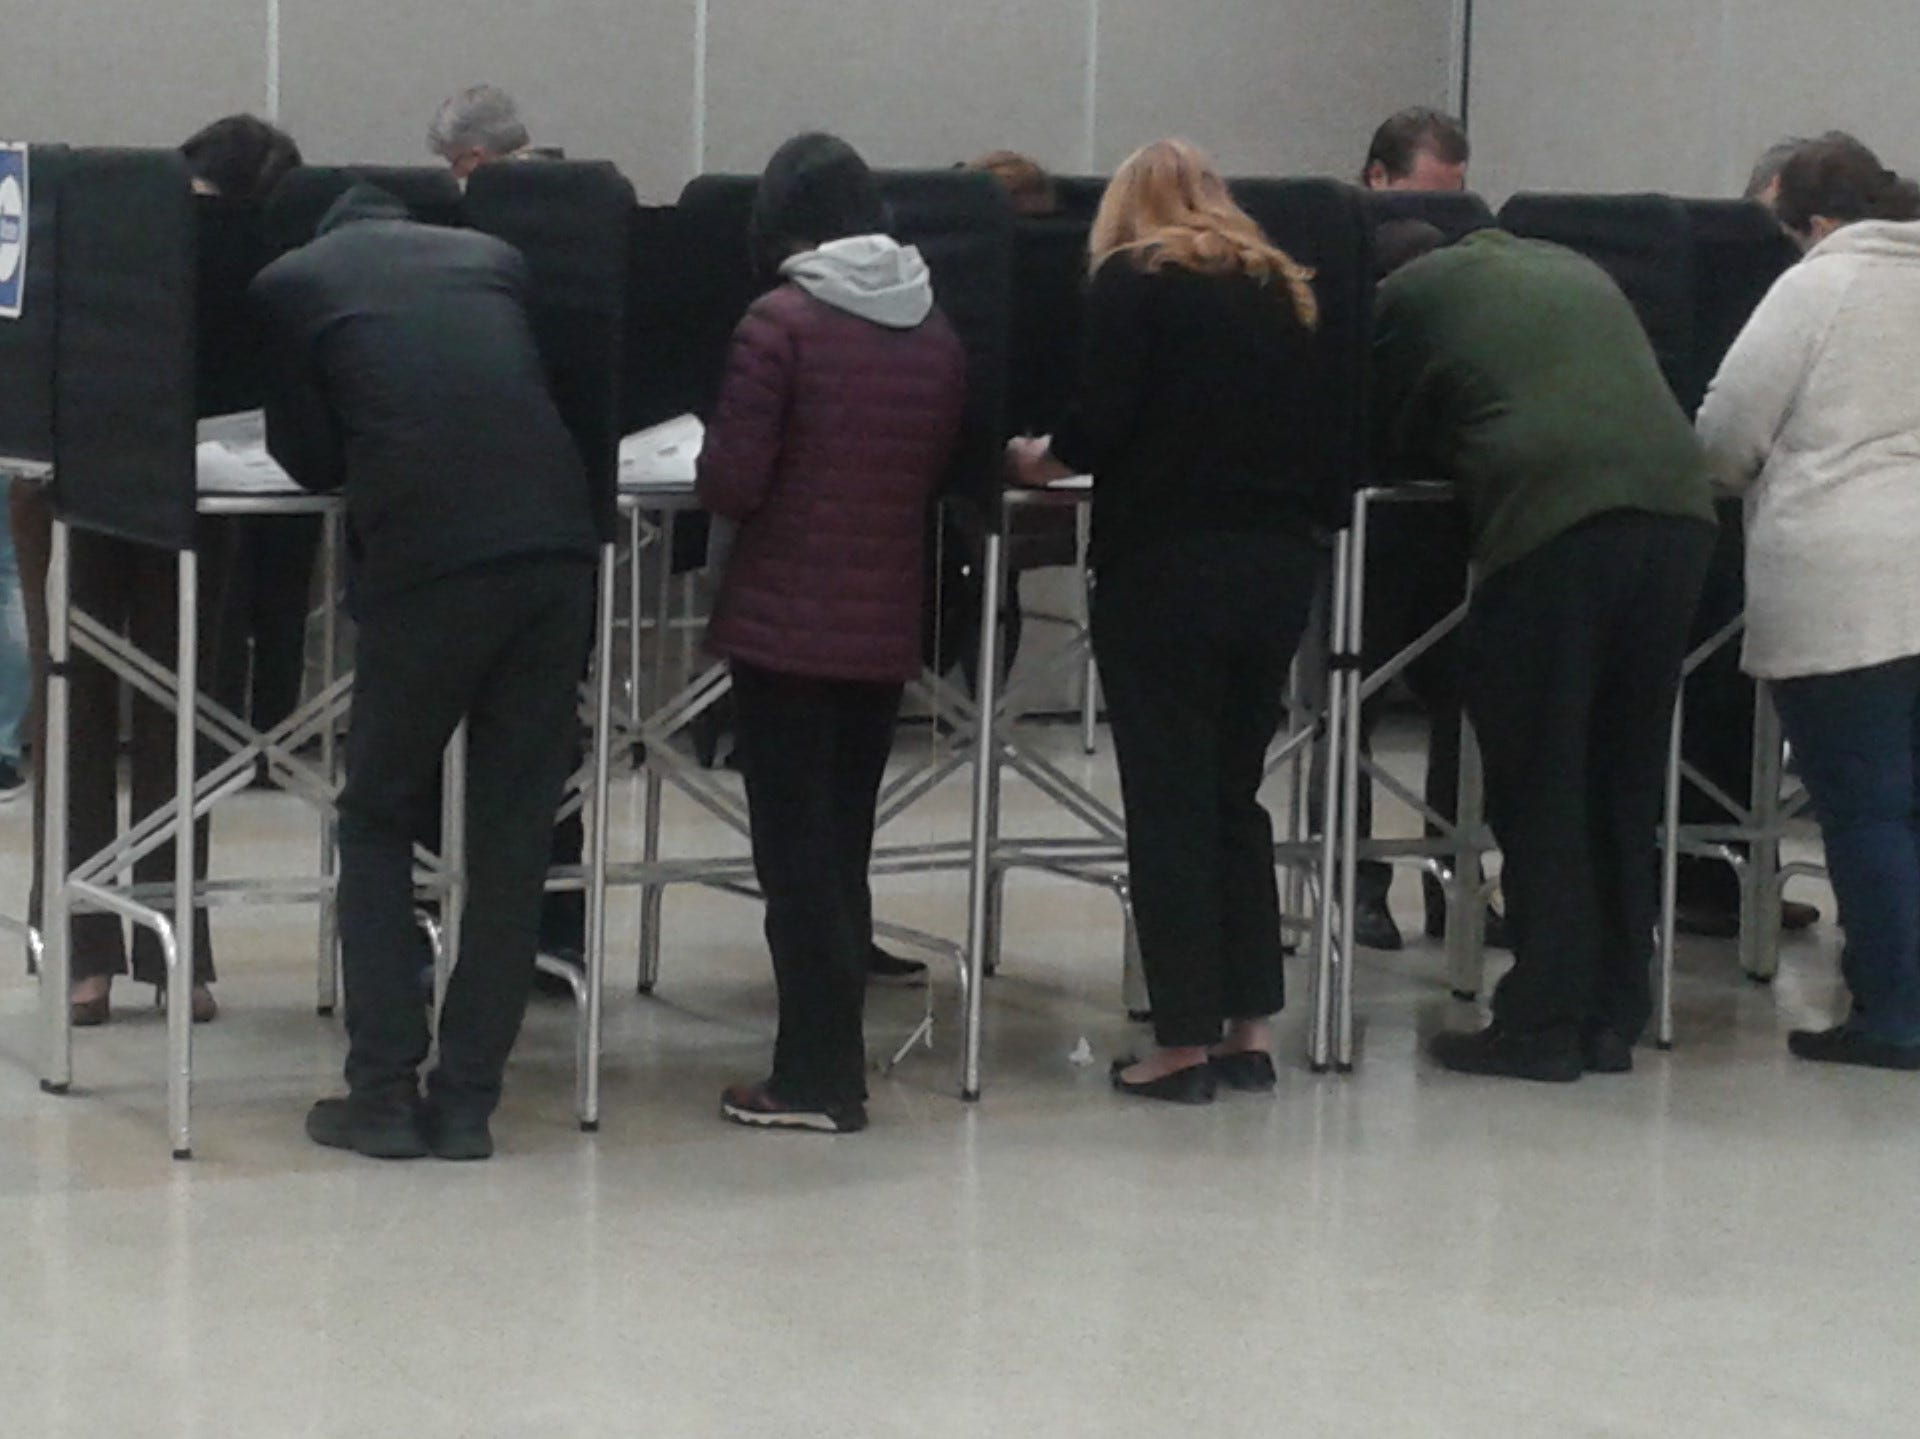 Voters work on their ballots at precinct #18 in the Novi Municipal Center.